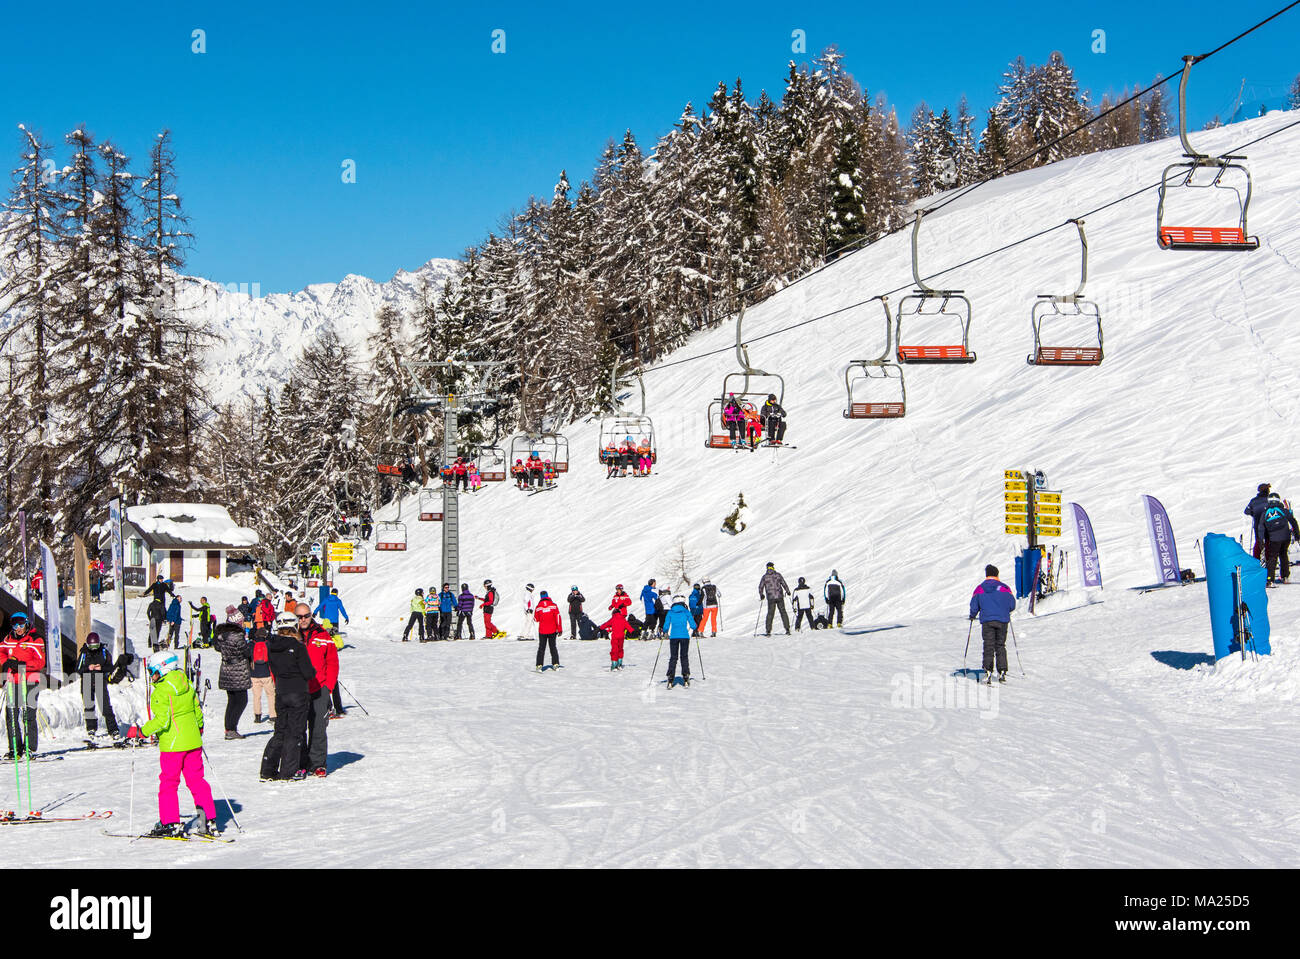 Pila ski resort, Aosta Valley, Italy - Stock Image